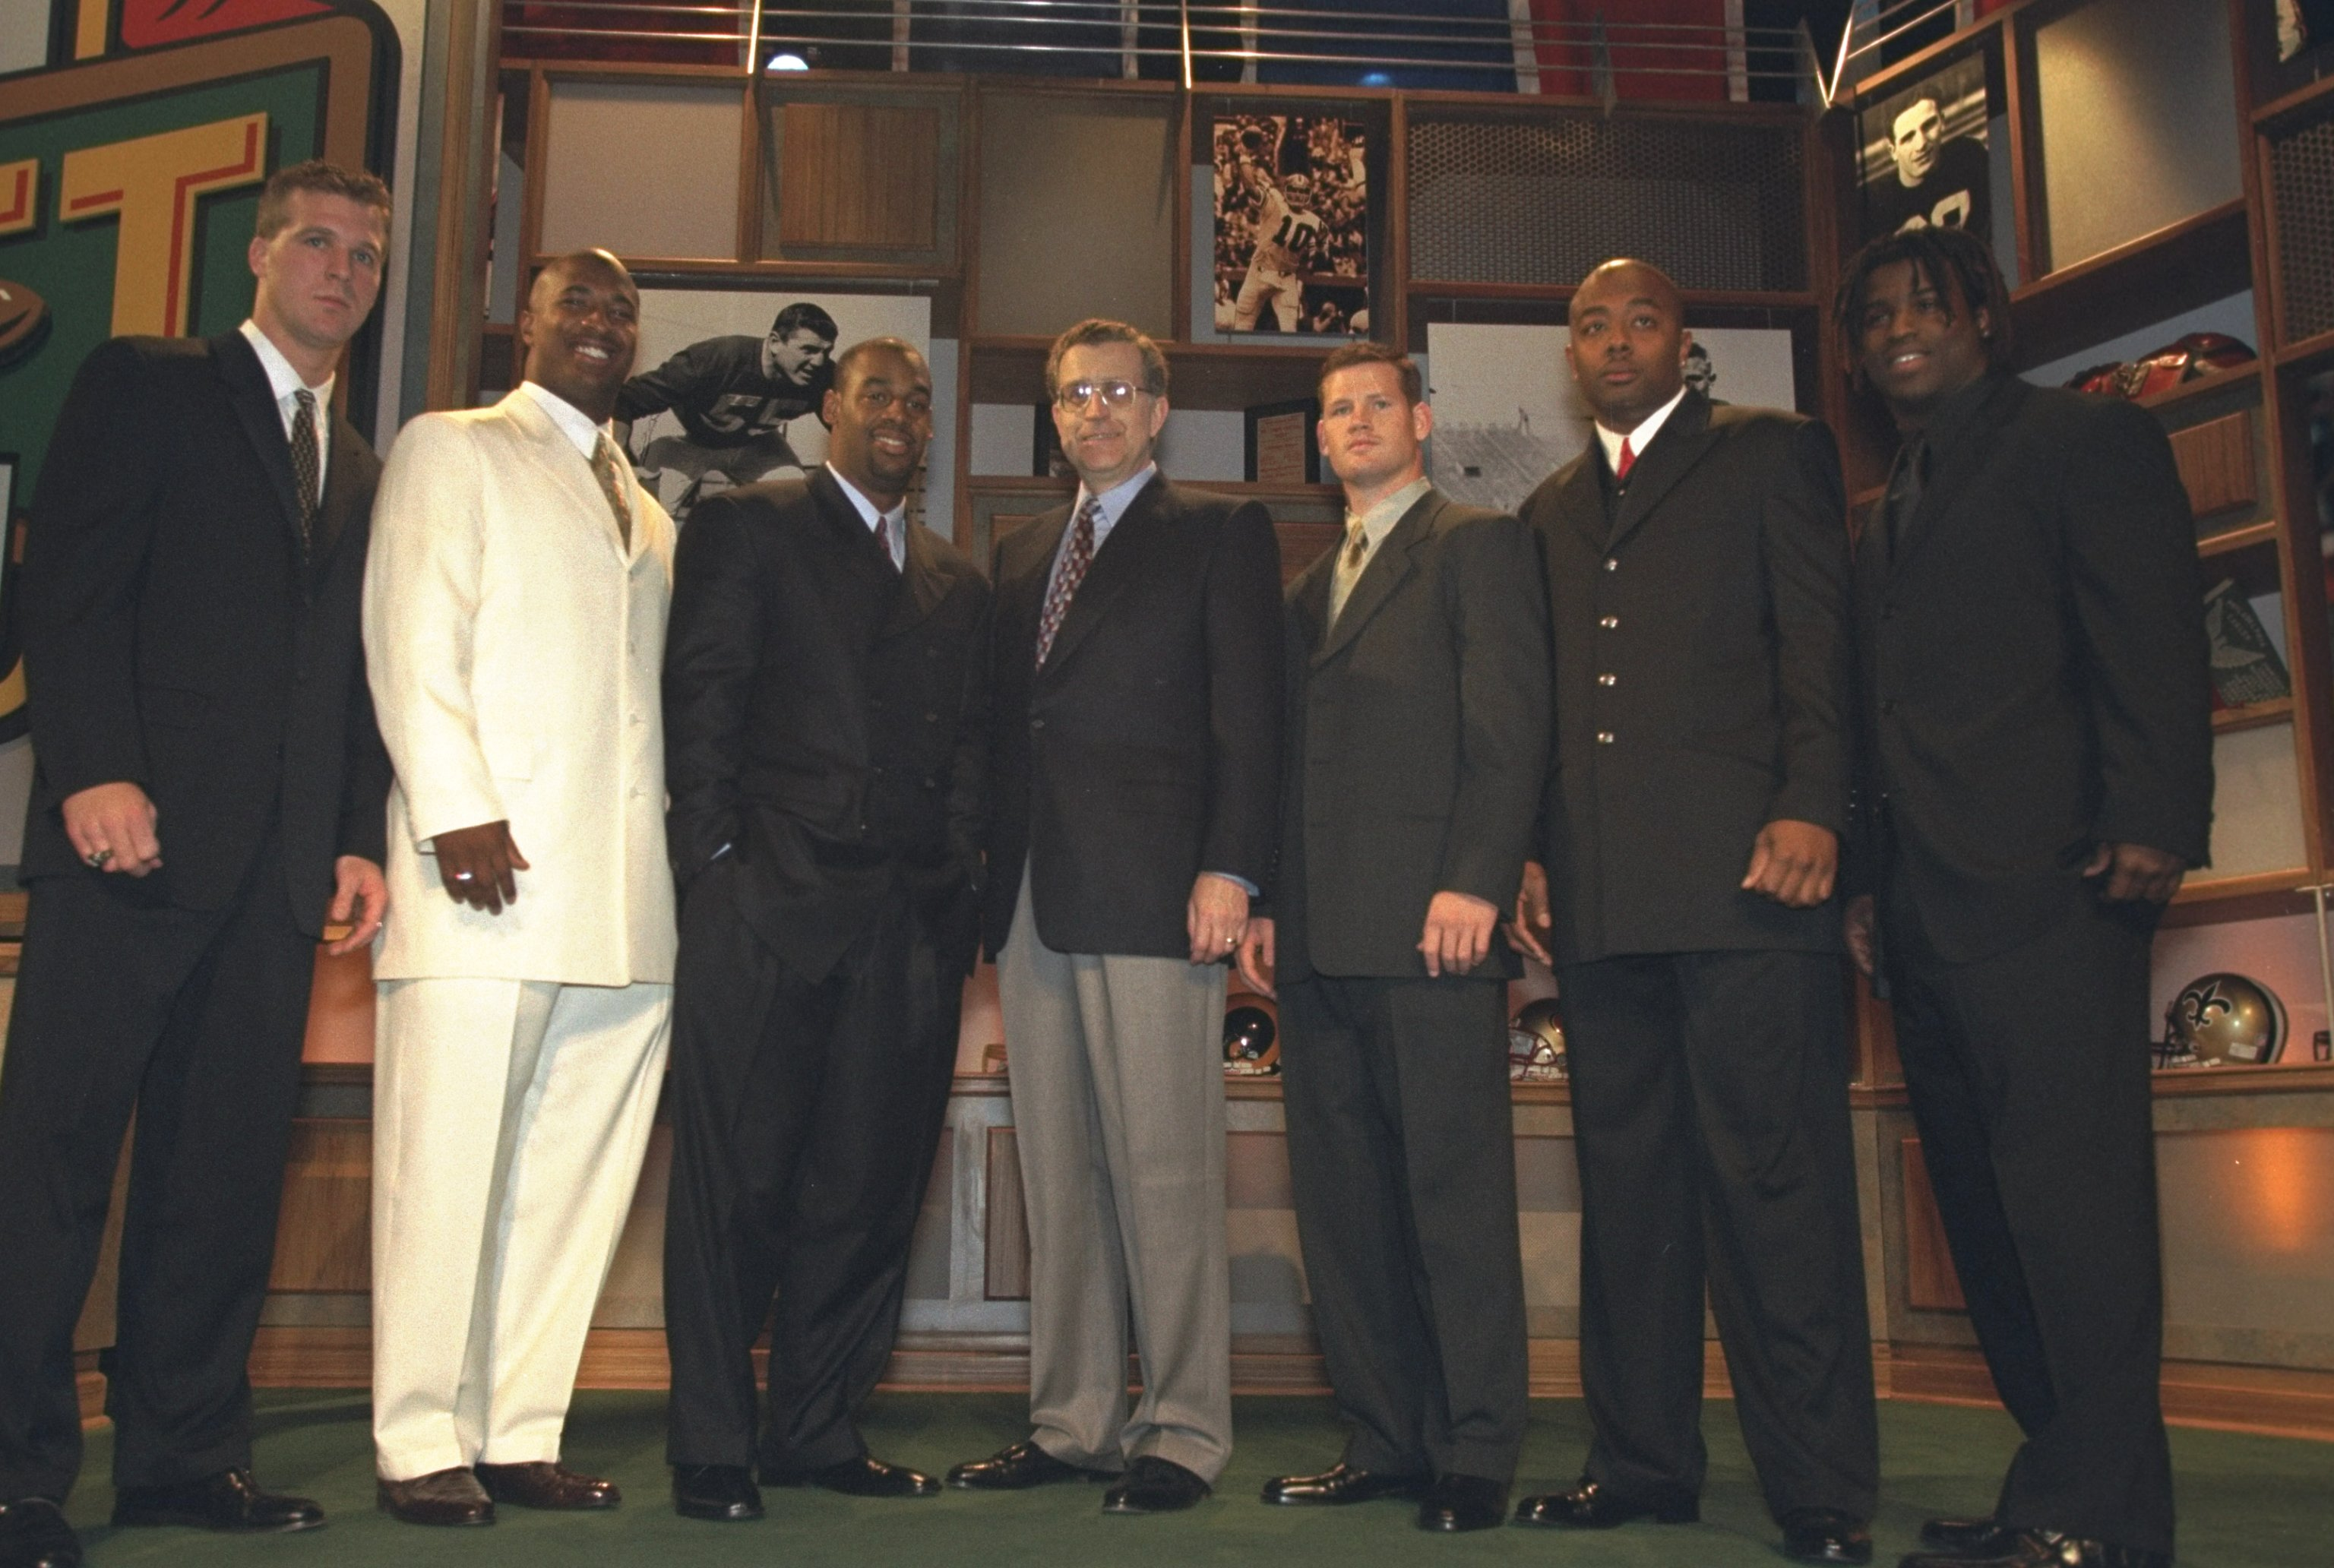 17 Apr 1999: From (L) to (R); Tim Couch, Daunte Culpepper, Donovan McNabb, Paul Tagliabue, Cade McNown, Akili Smith and Ricky Williams pose for the camera during the NFL Draft at the Madison Square Garden in New York, New York.